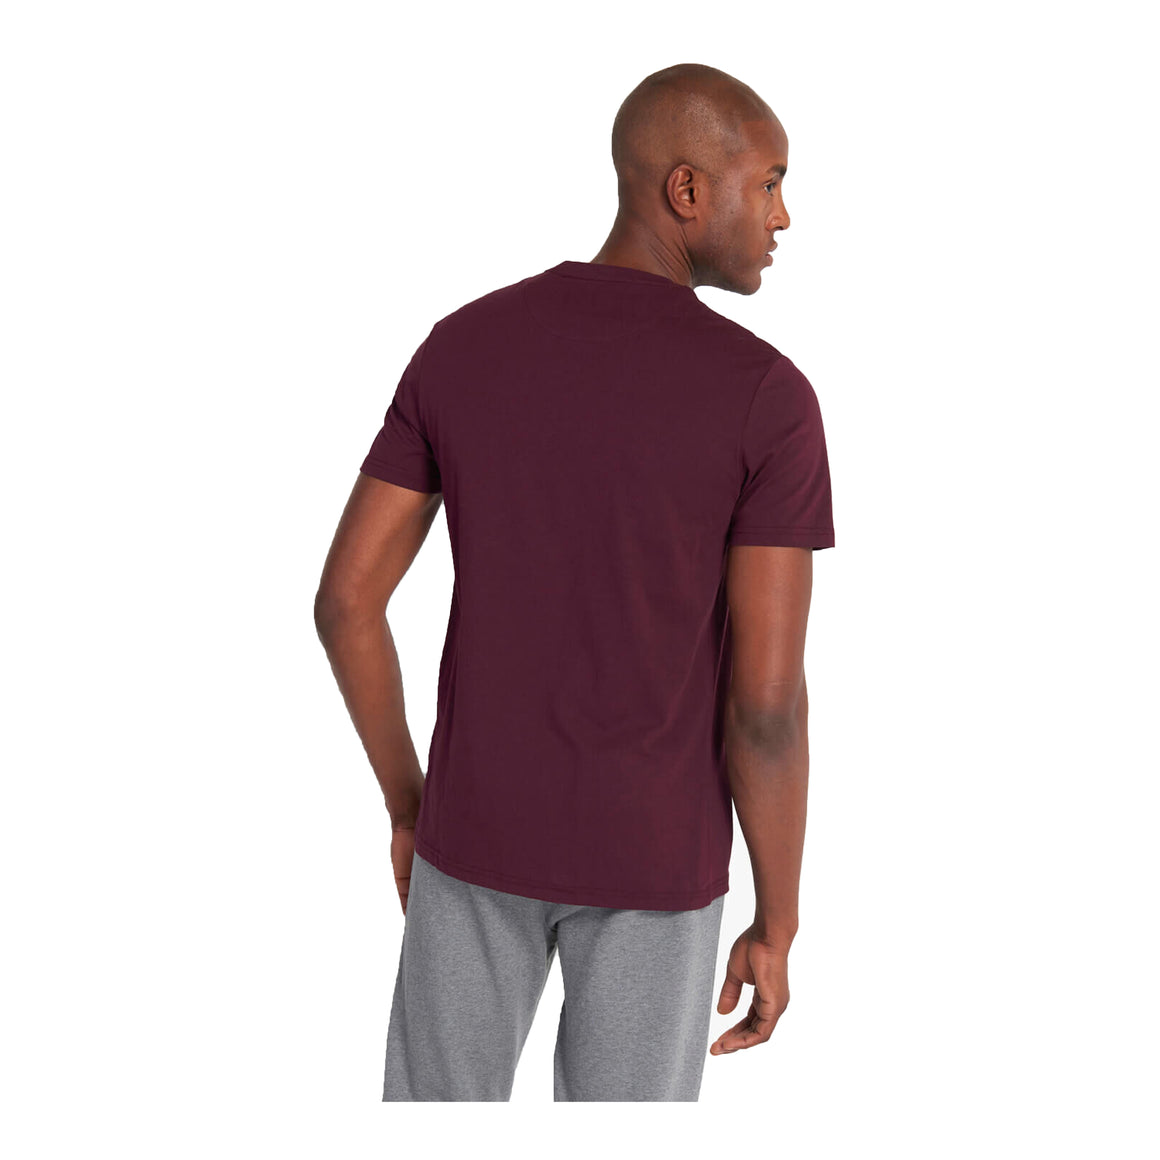 Plain T-Shirt for Men in Burgundy